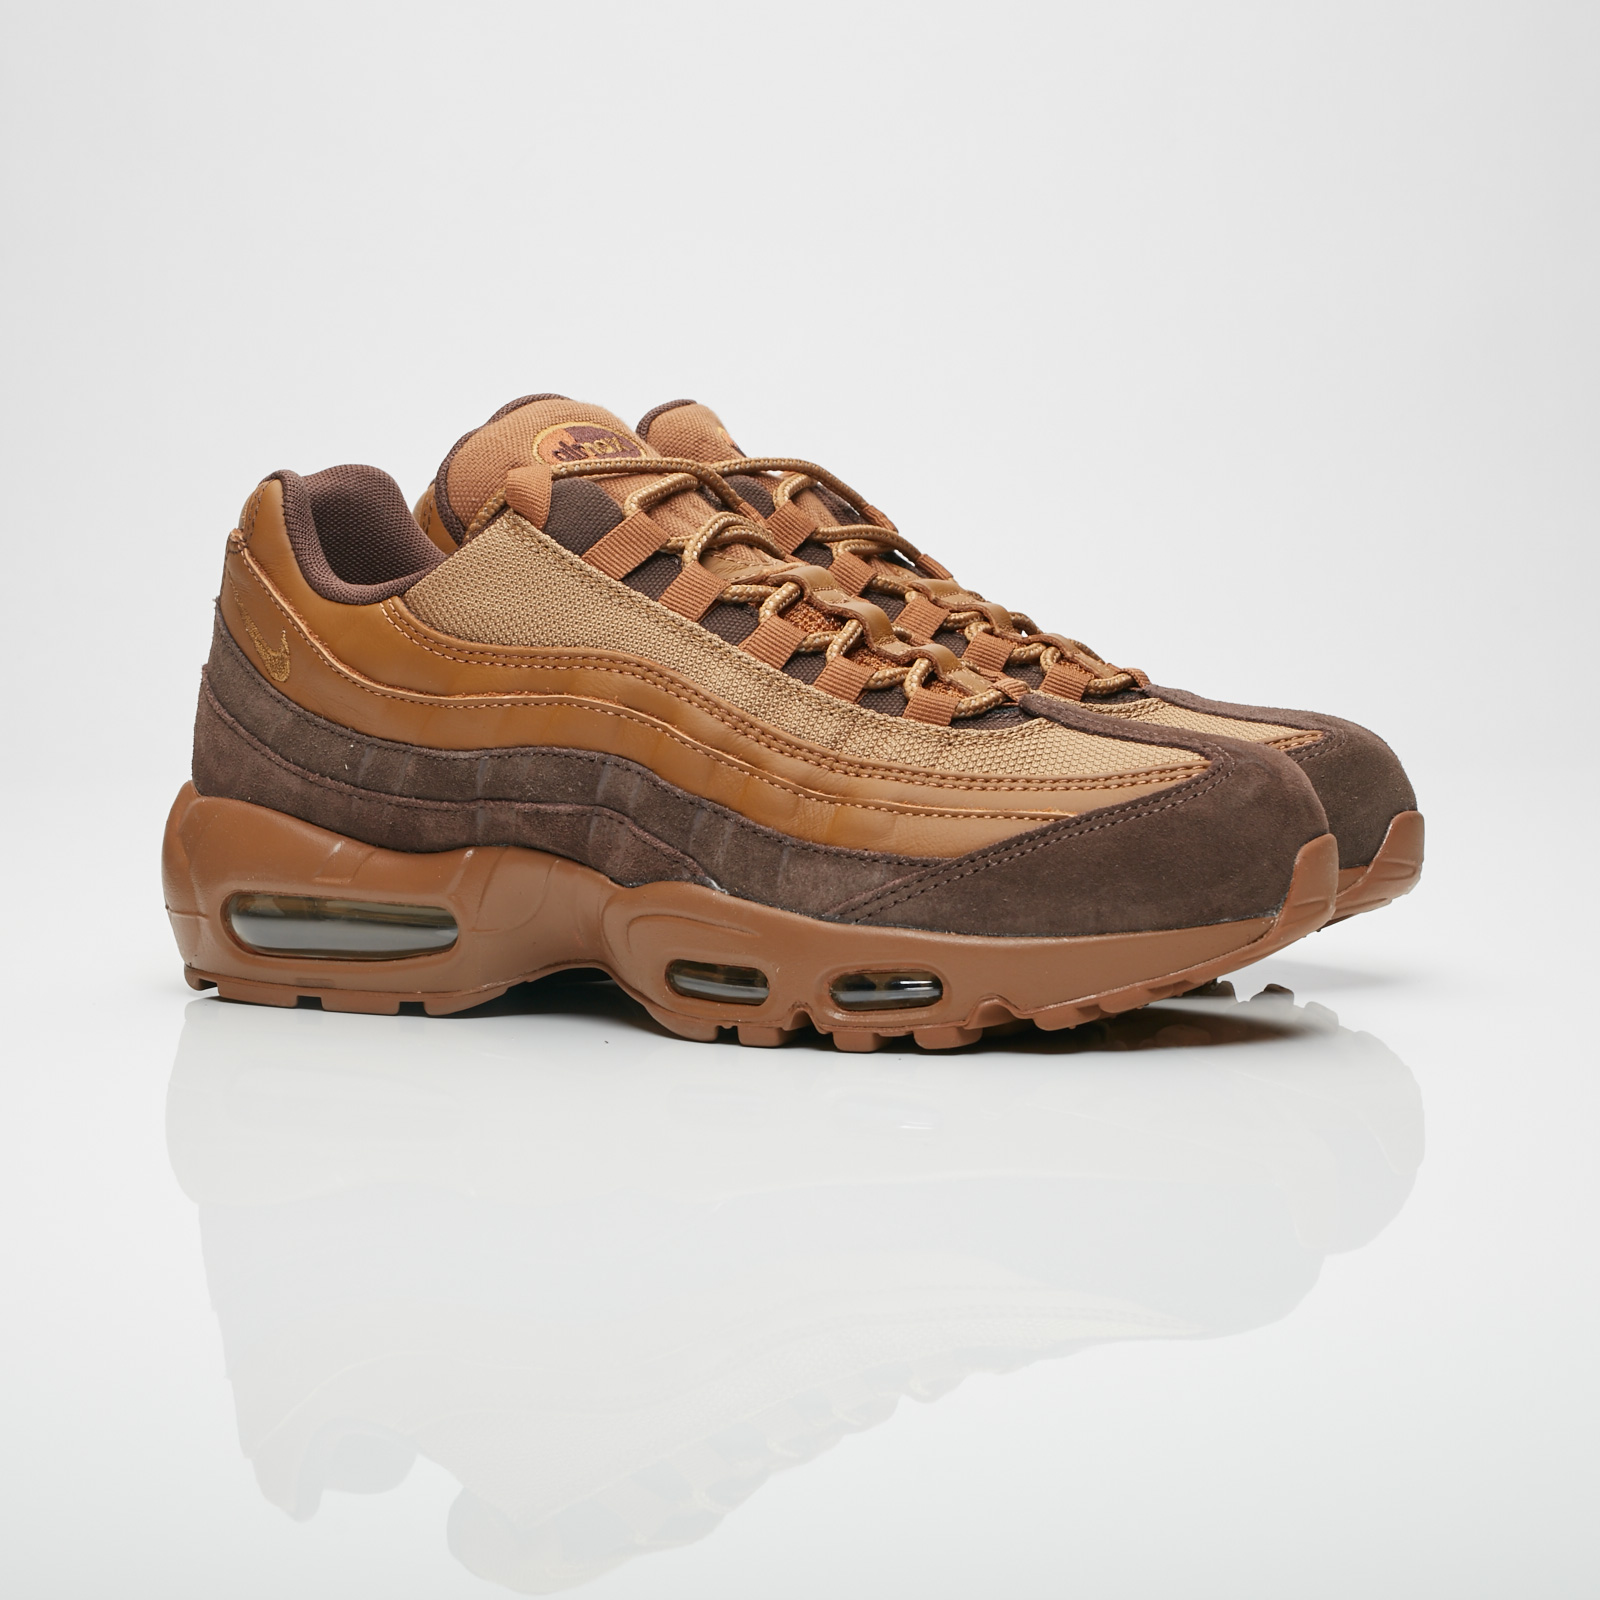 taille 40 5a626 43f79 Nike Air Max 95 Premium - 538416-203 - Sneakersnstuff ...